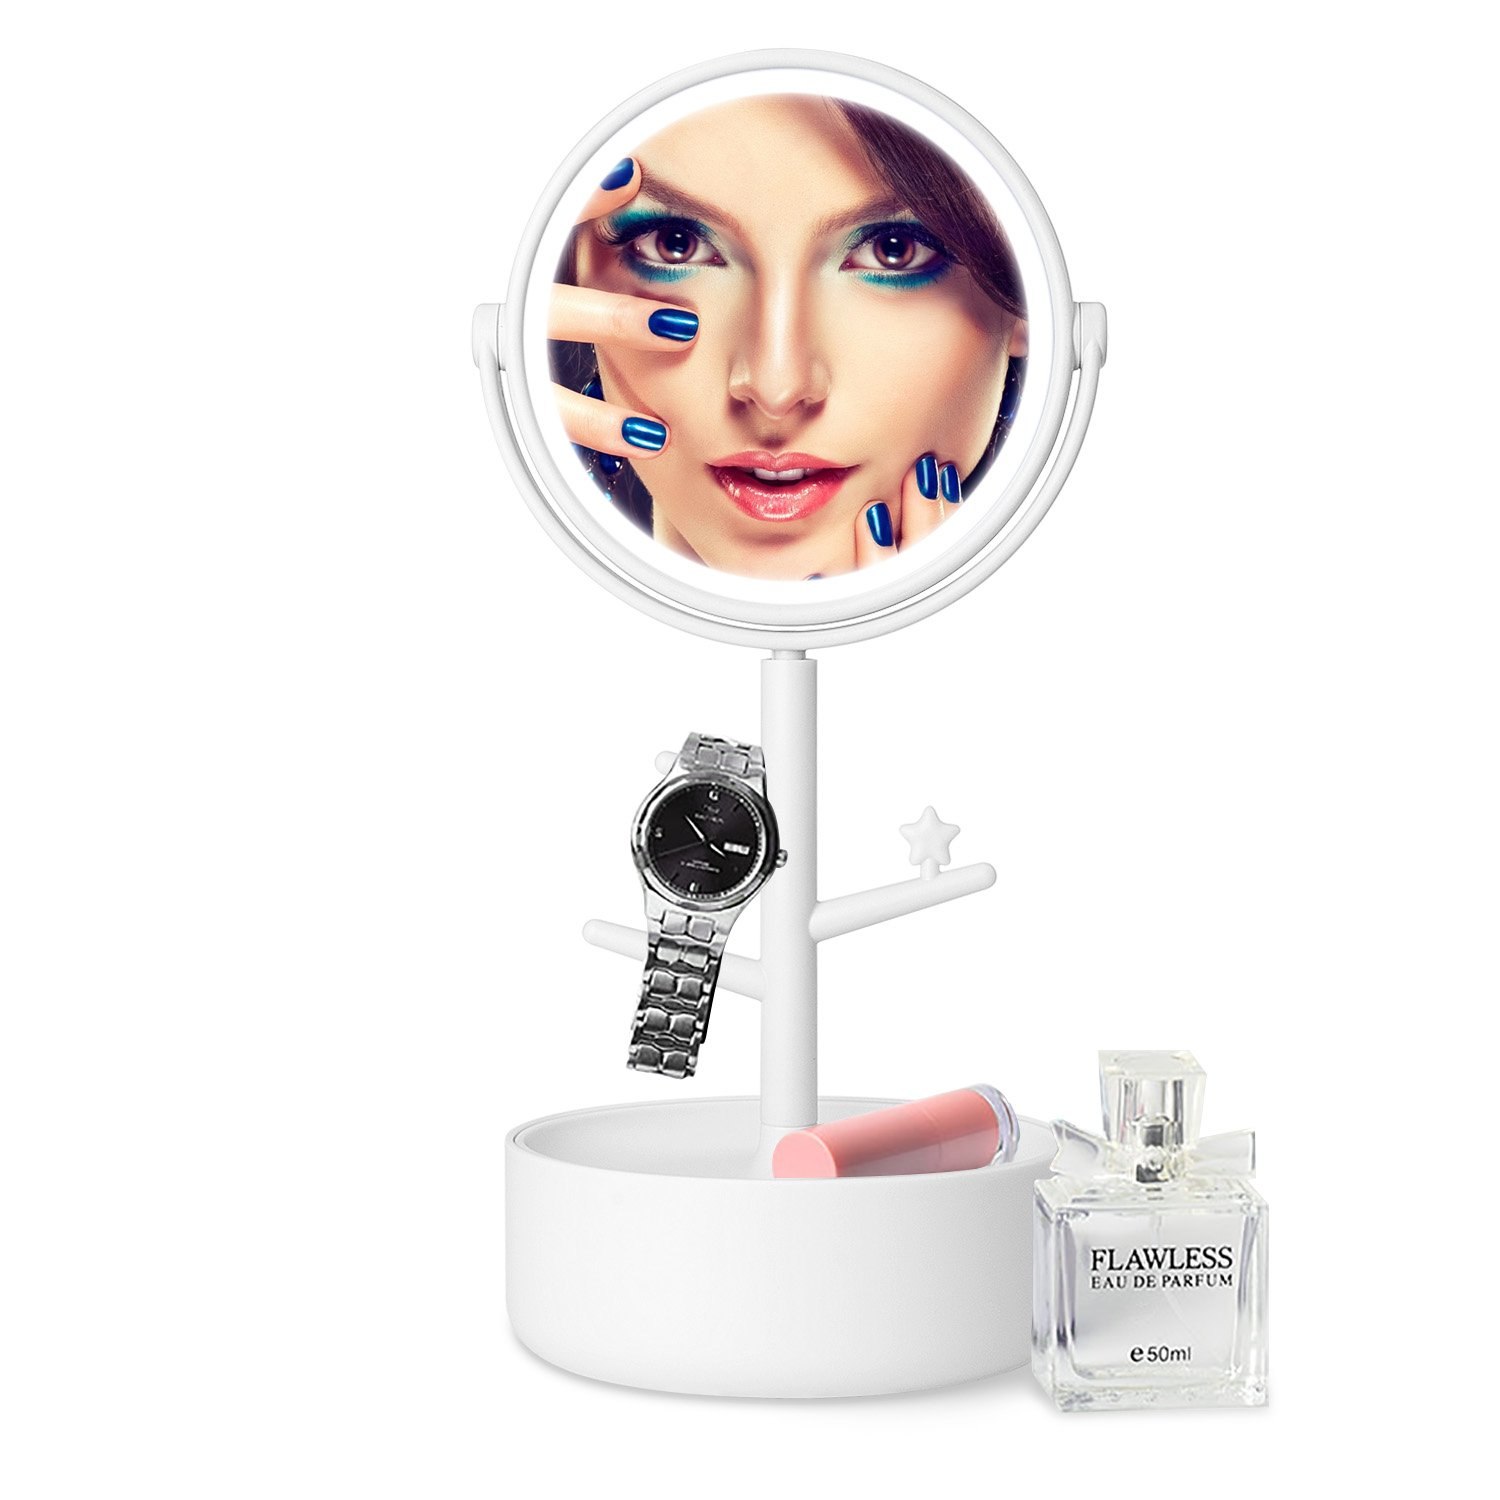 FAMLOVE LED Lighted Makeup Mirror/Circle Touch Screen Vanity Mirror, Bathroom Countertop Cosmetic Mirrors Organizer, Batteries USB Charging, 360° Free Rotation - White